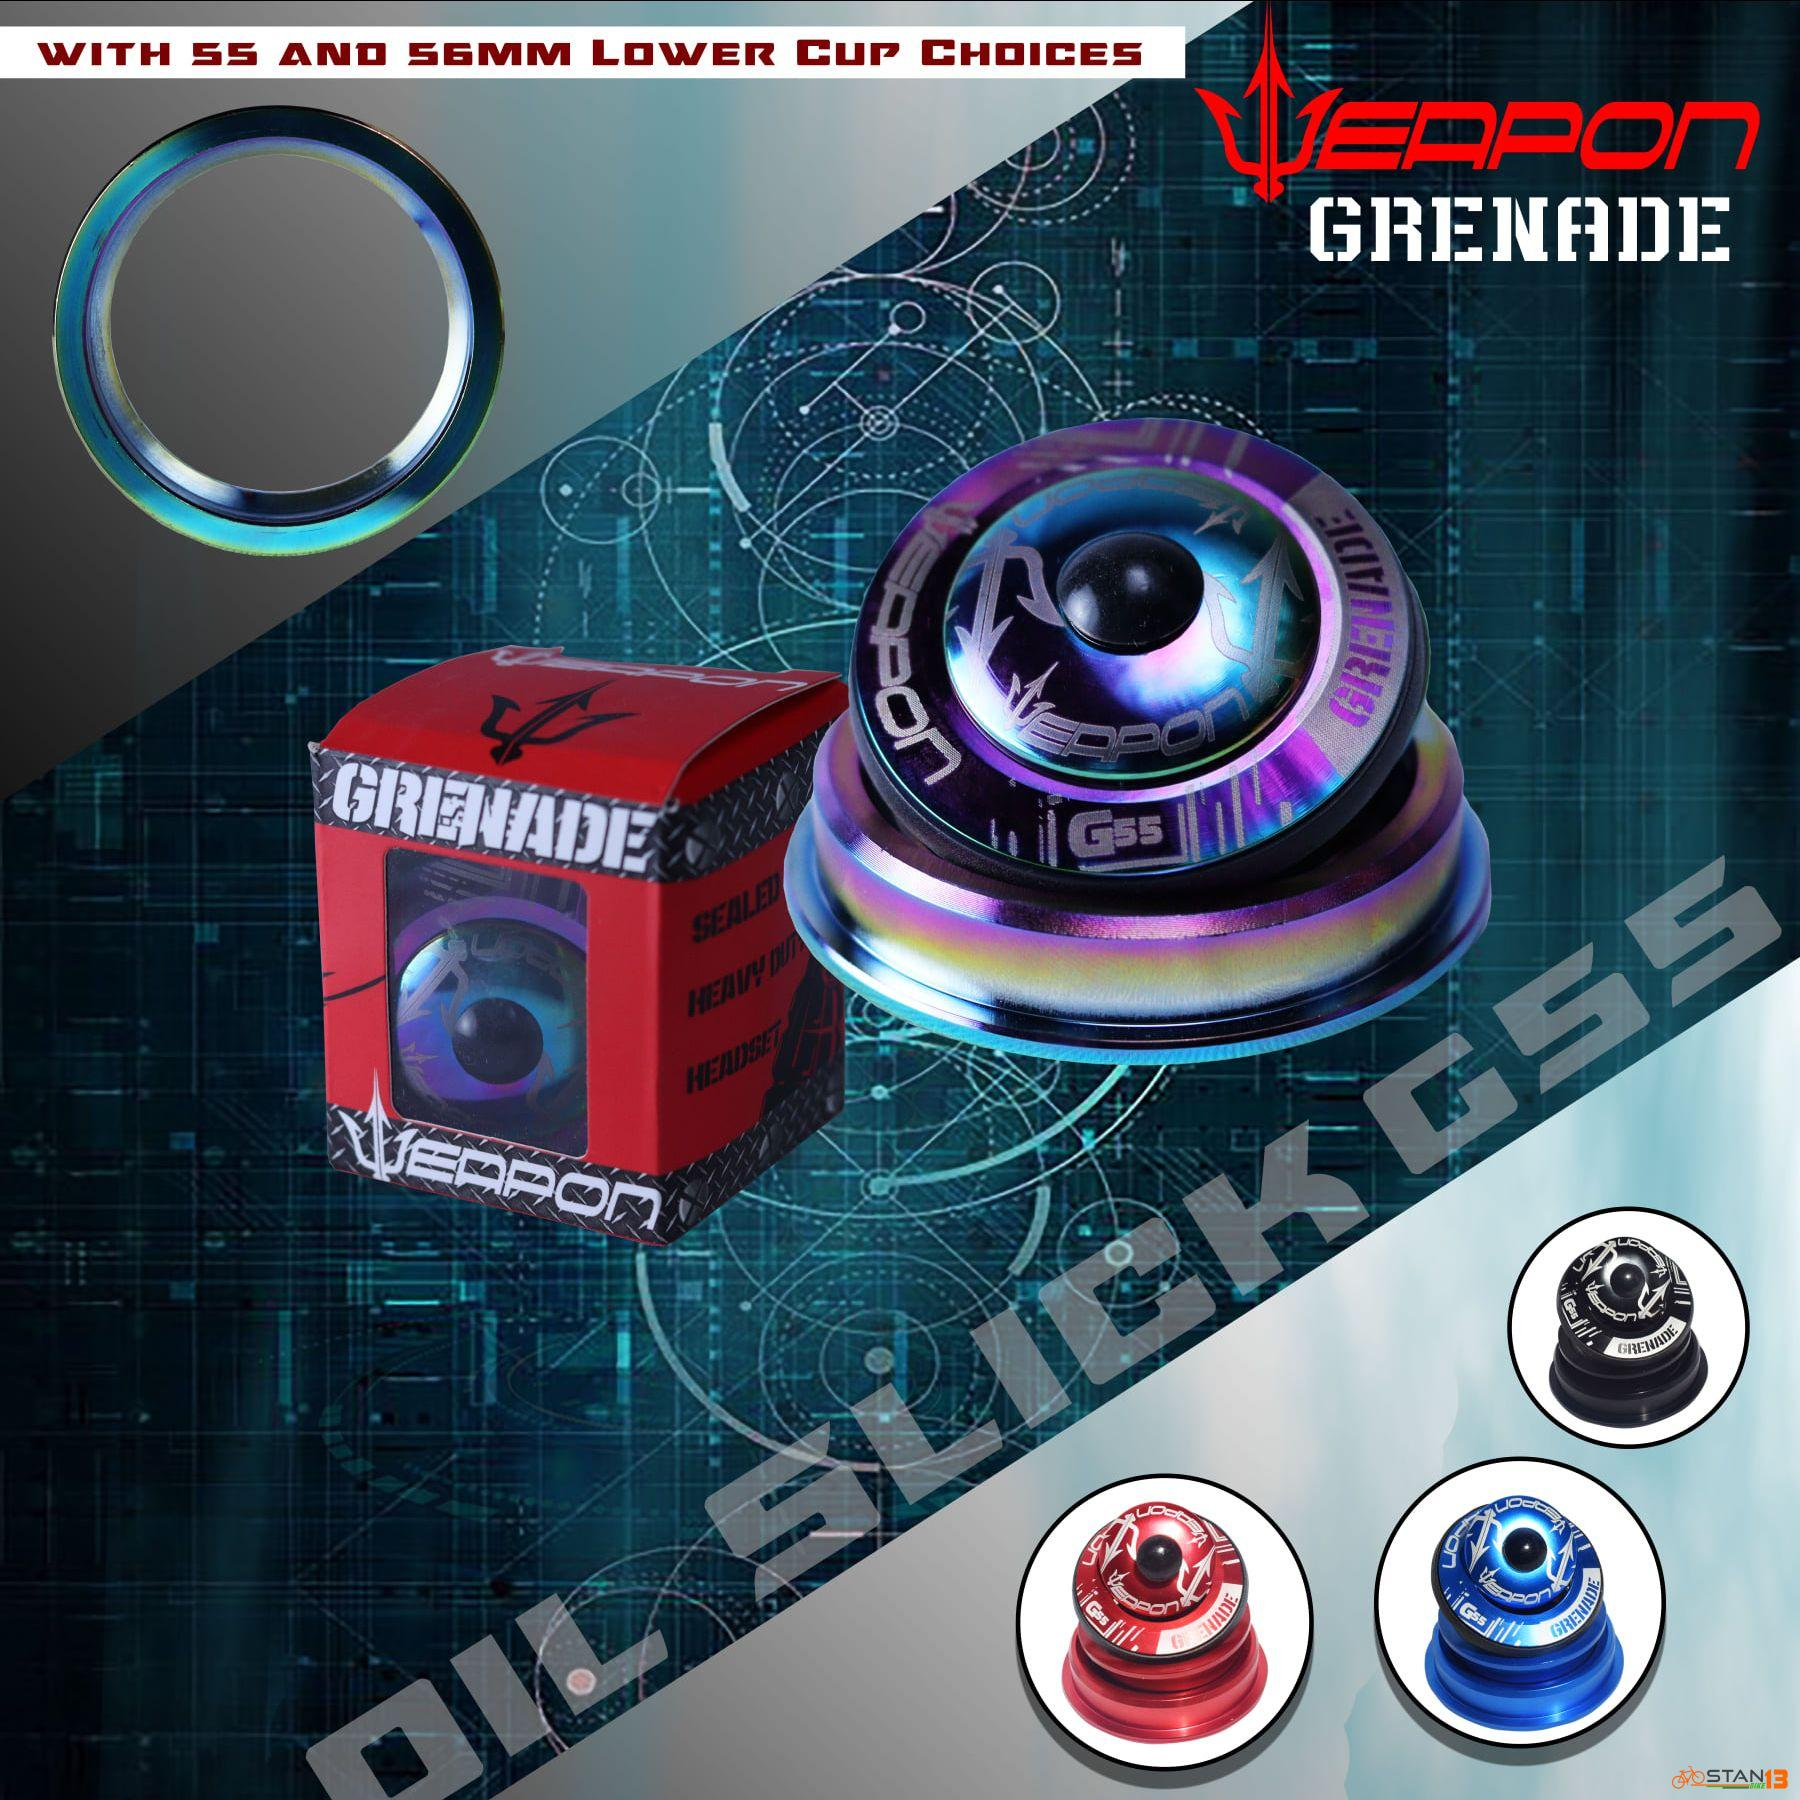 Headset Weapon Grenade Headset OIL SLICK Tapered or Integrated